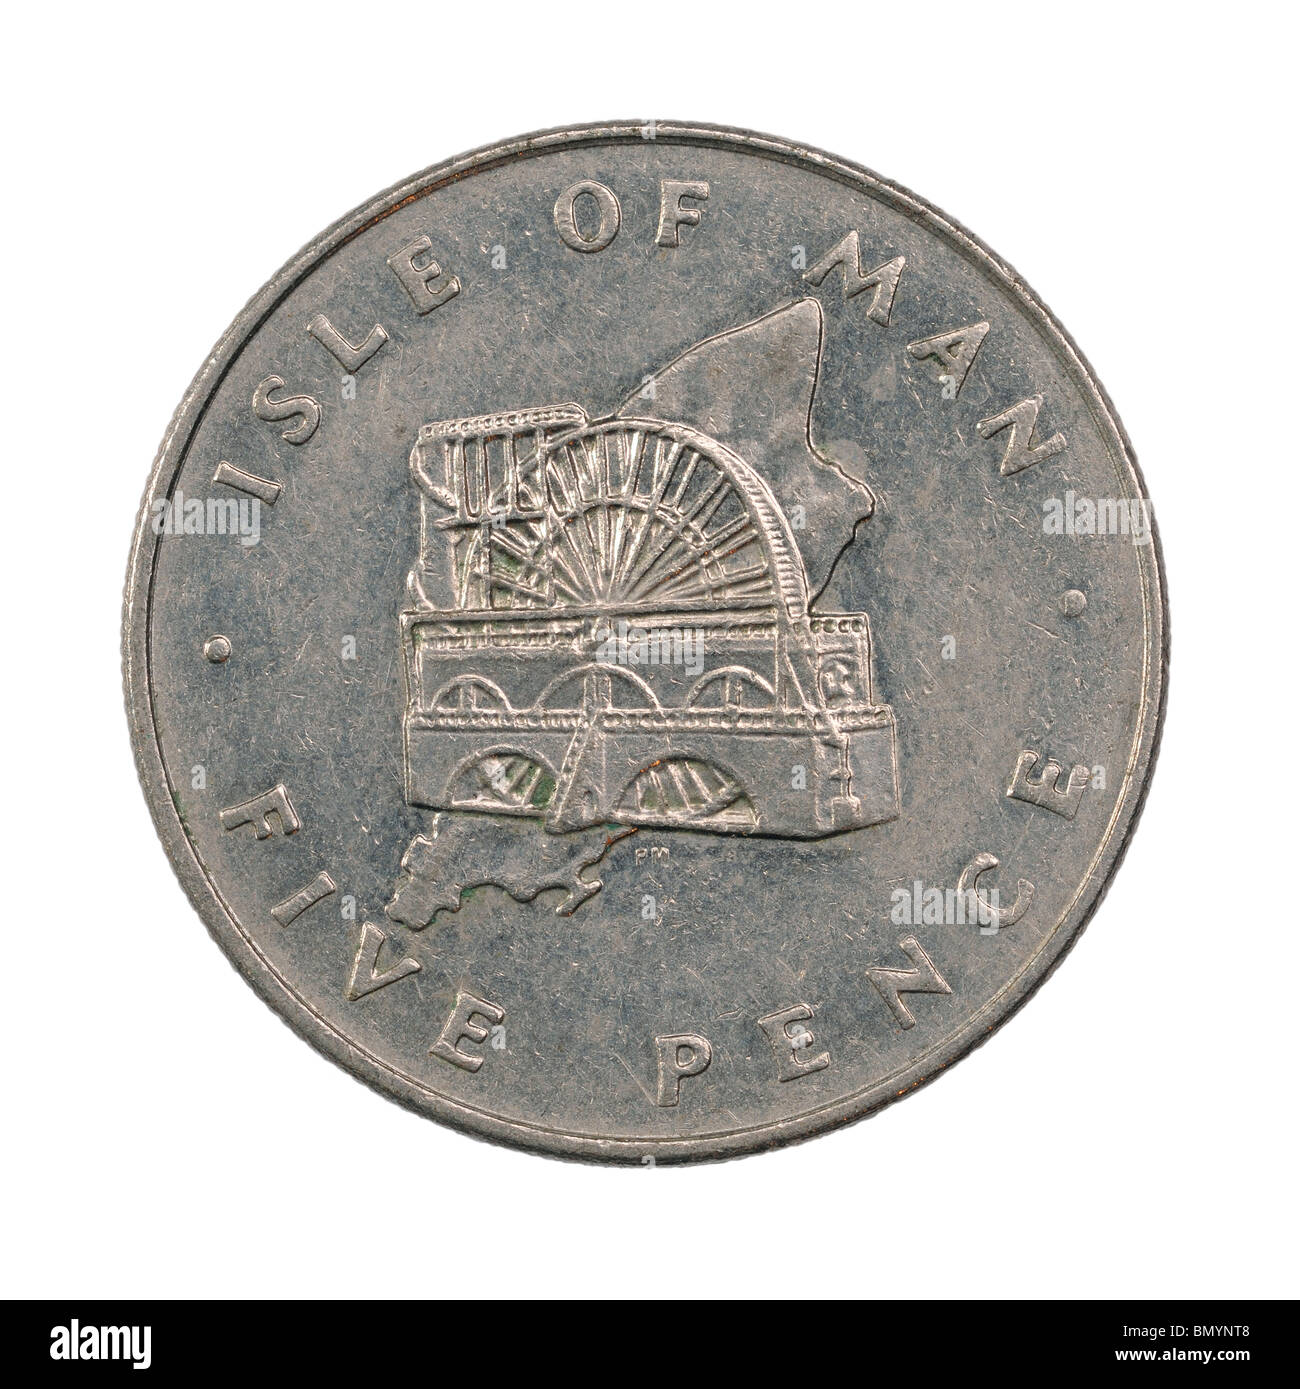 Isle of Man Five Pence coin - Stock Image